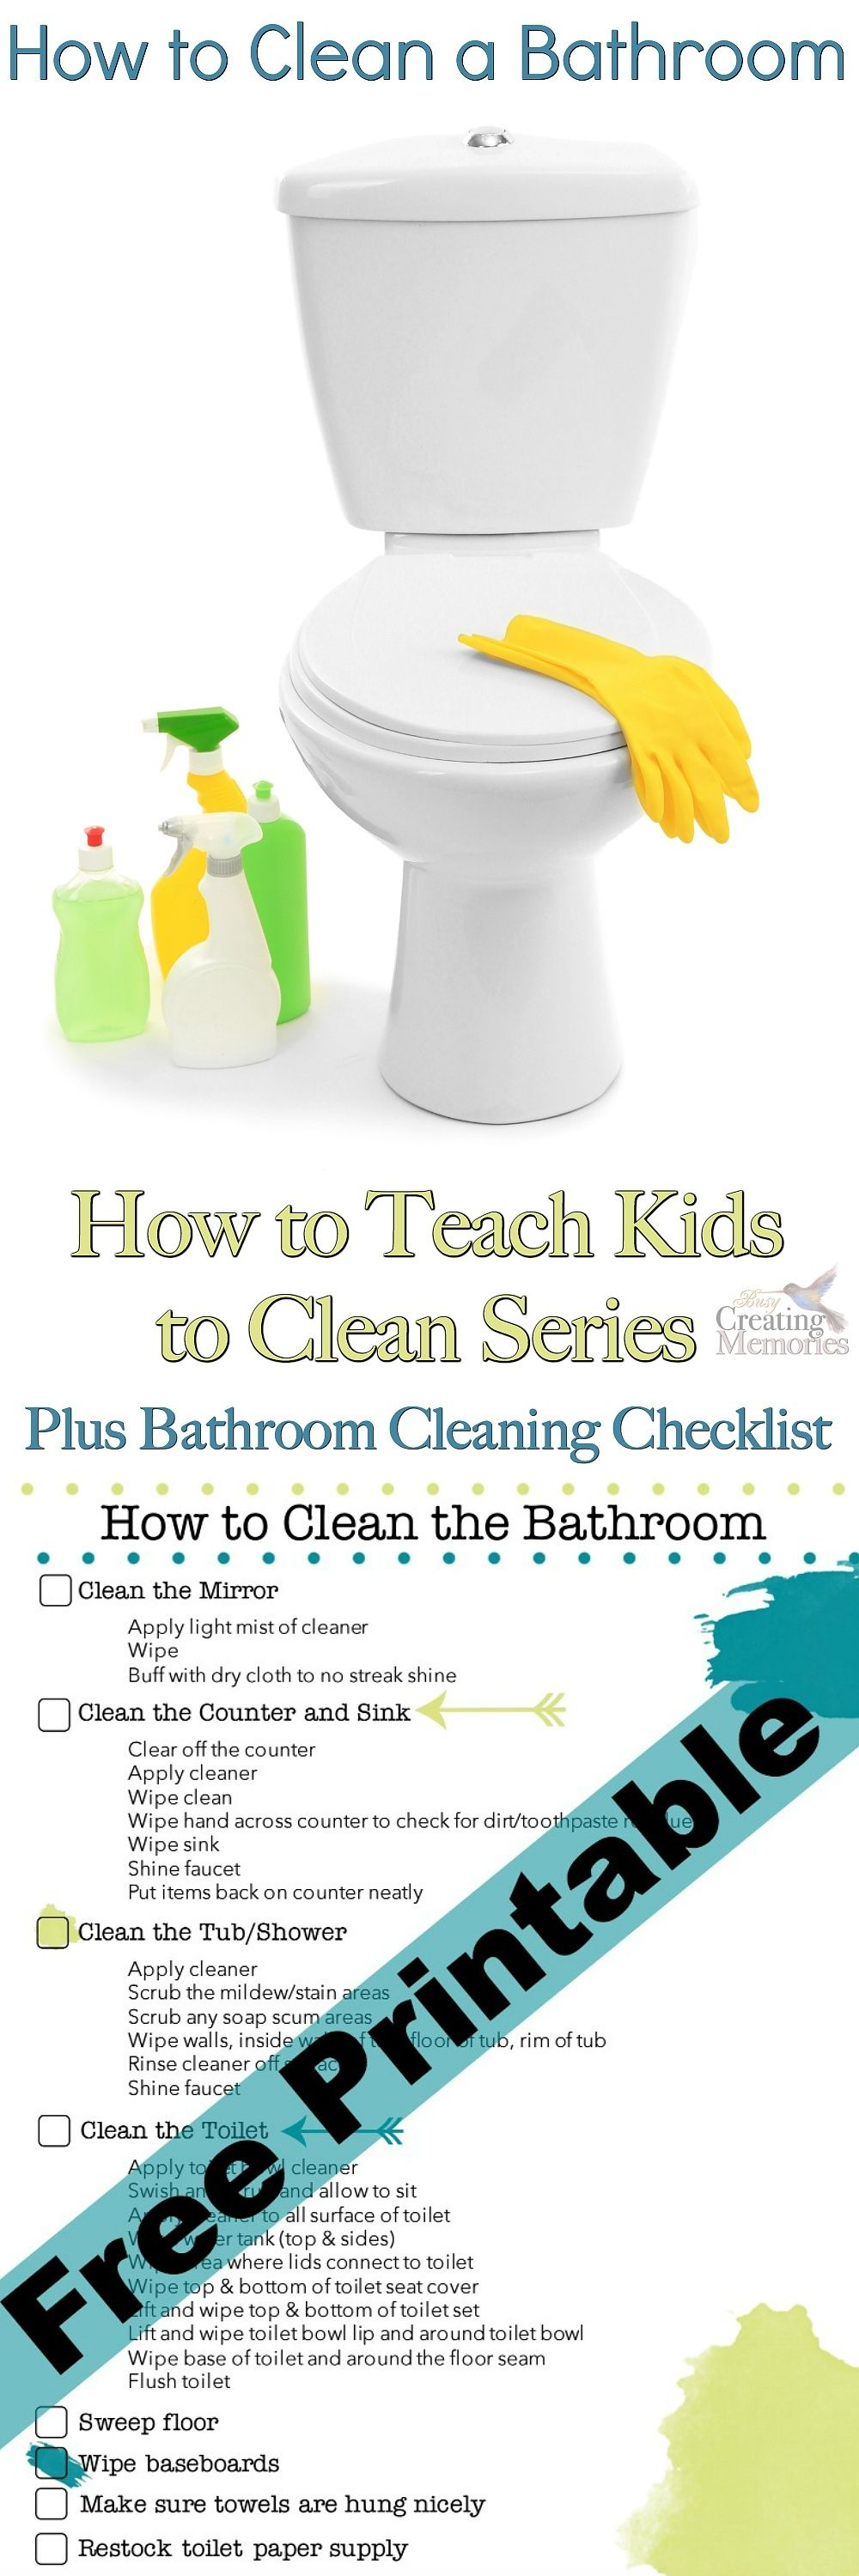 Teach Kids To Clean A Bathroom Checklist Printable Bathroom Cleaning Checklist House Cleaning Tips Bathroom Cleaning